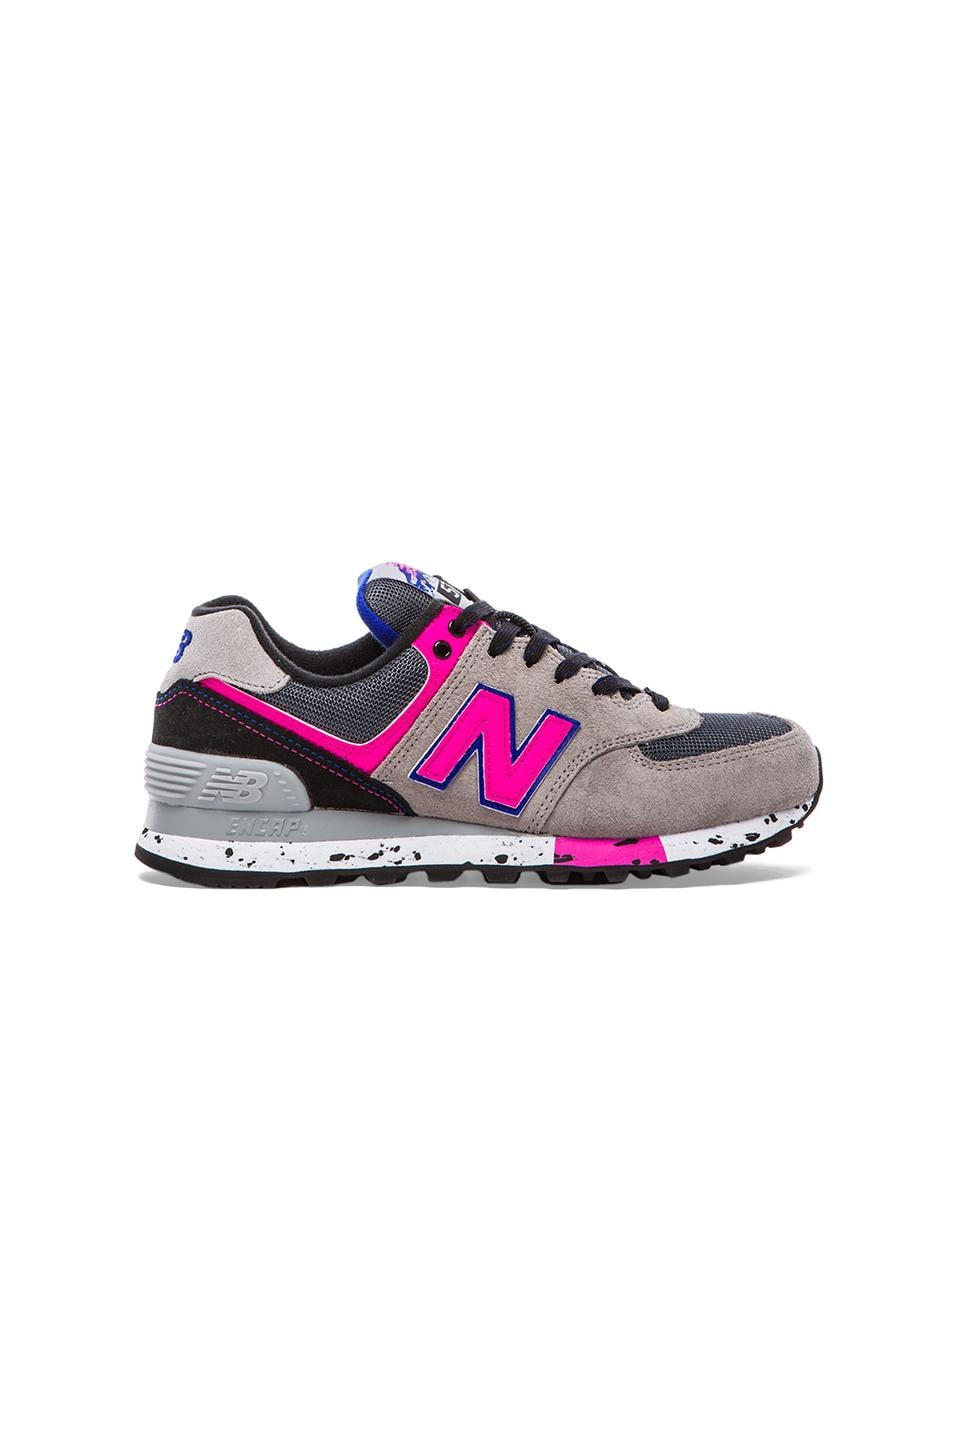 New Balance 574 '90S Outdoor Collection Sneaker in Grey & Pink